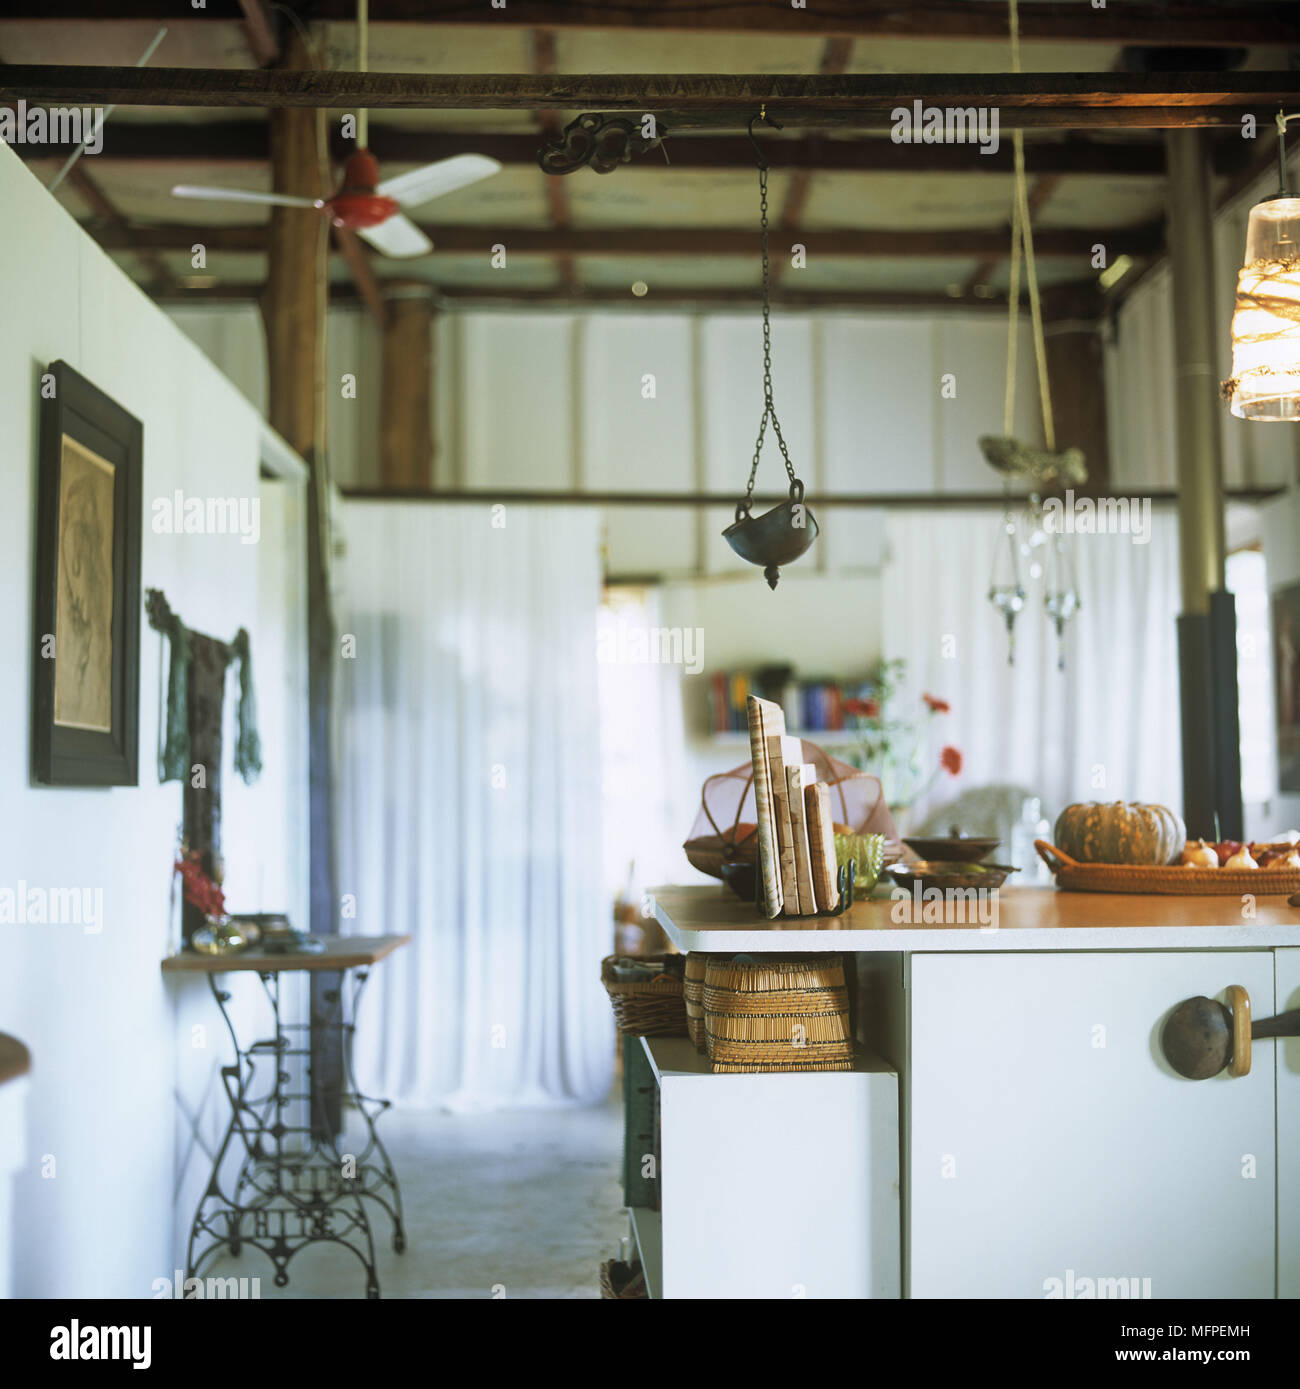 Basket Ceiling Stockfotos & Basket Ceiling Bilder - Seite 2 - Alamy